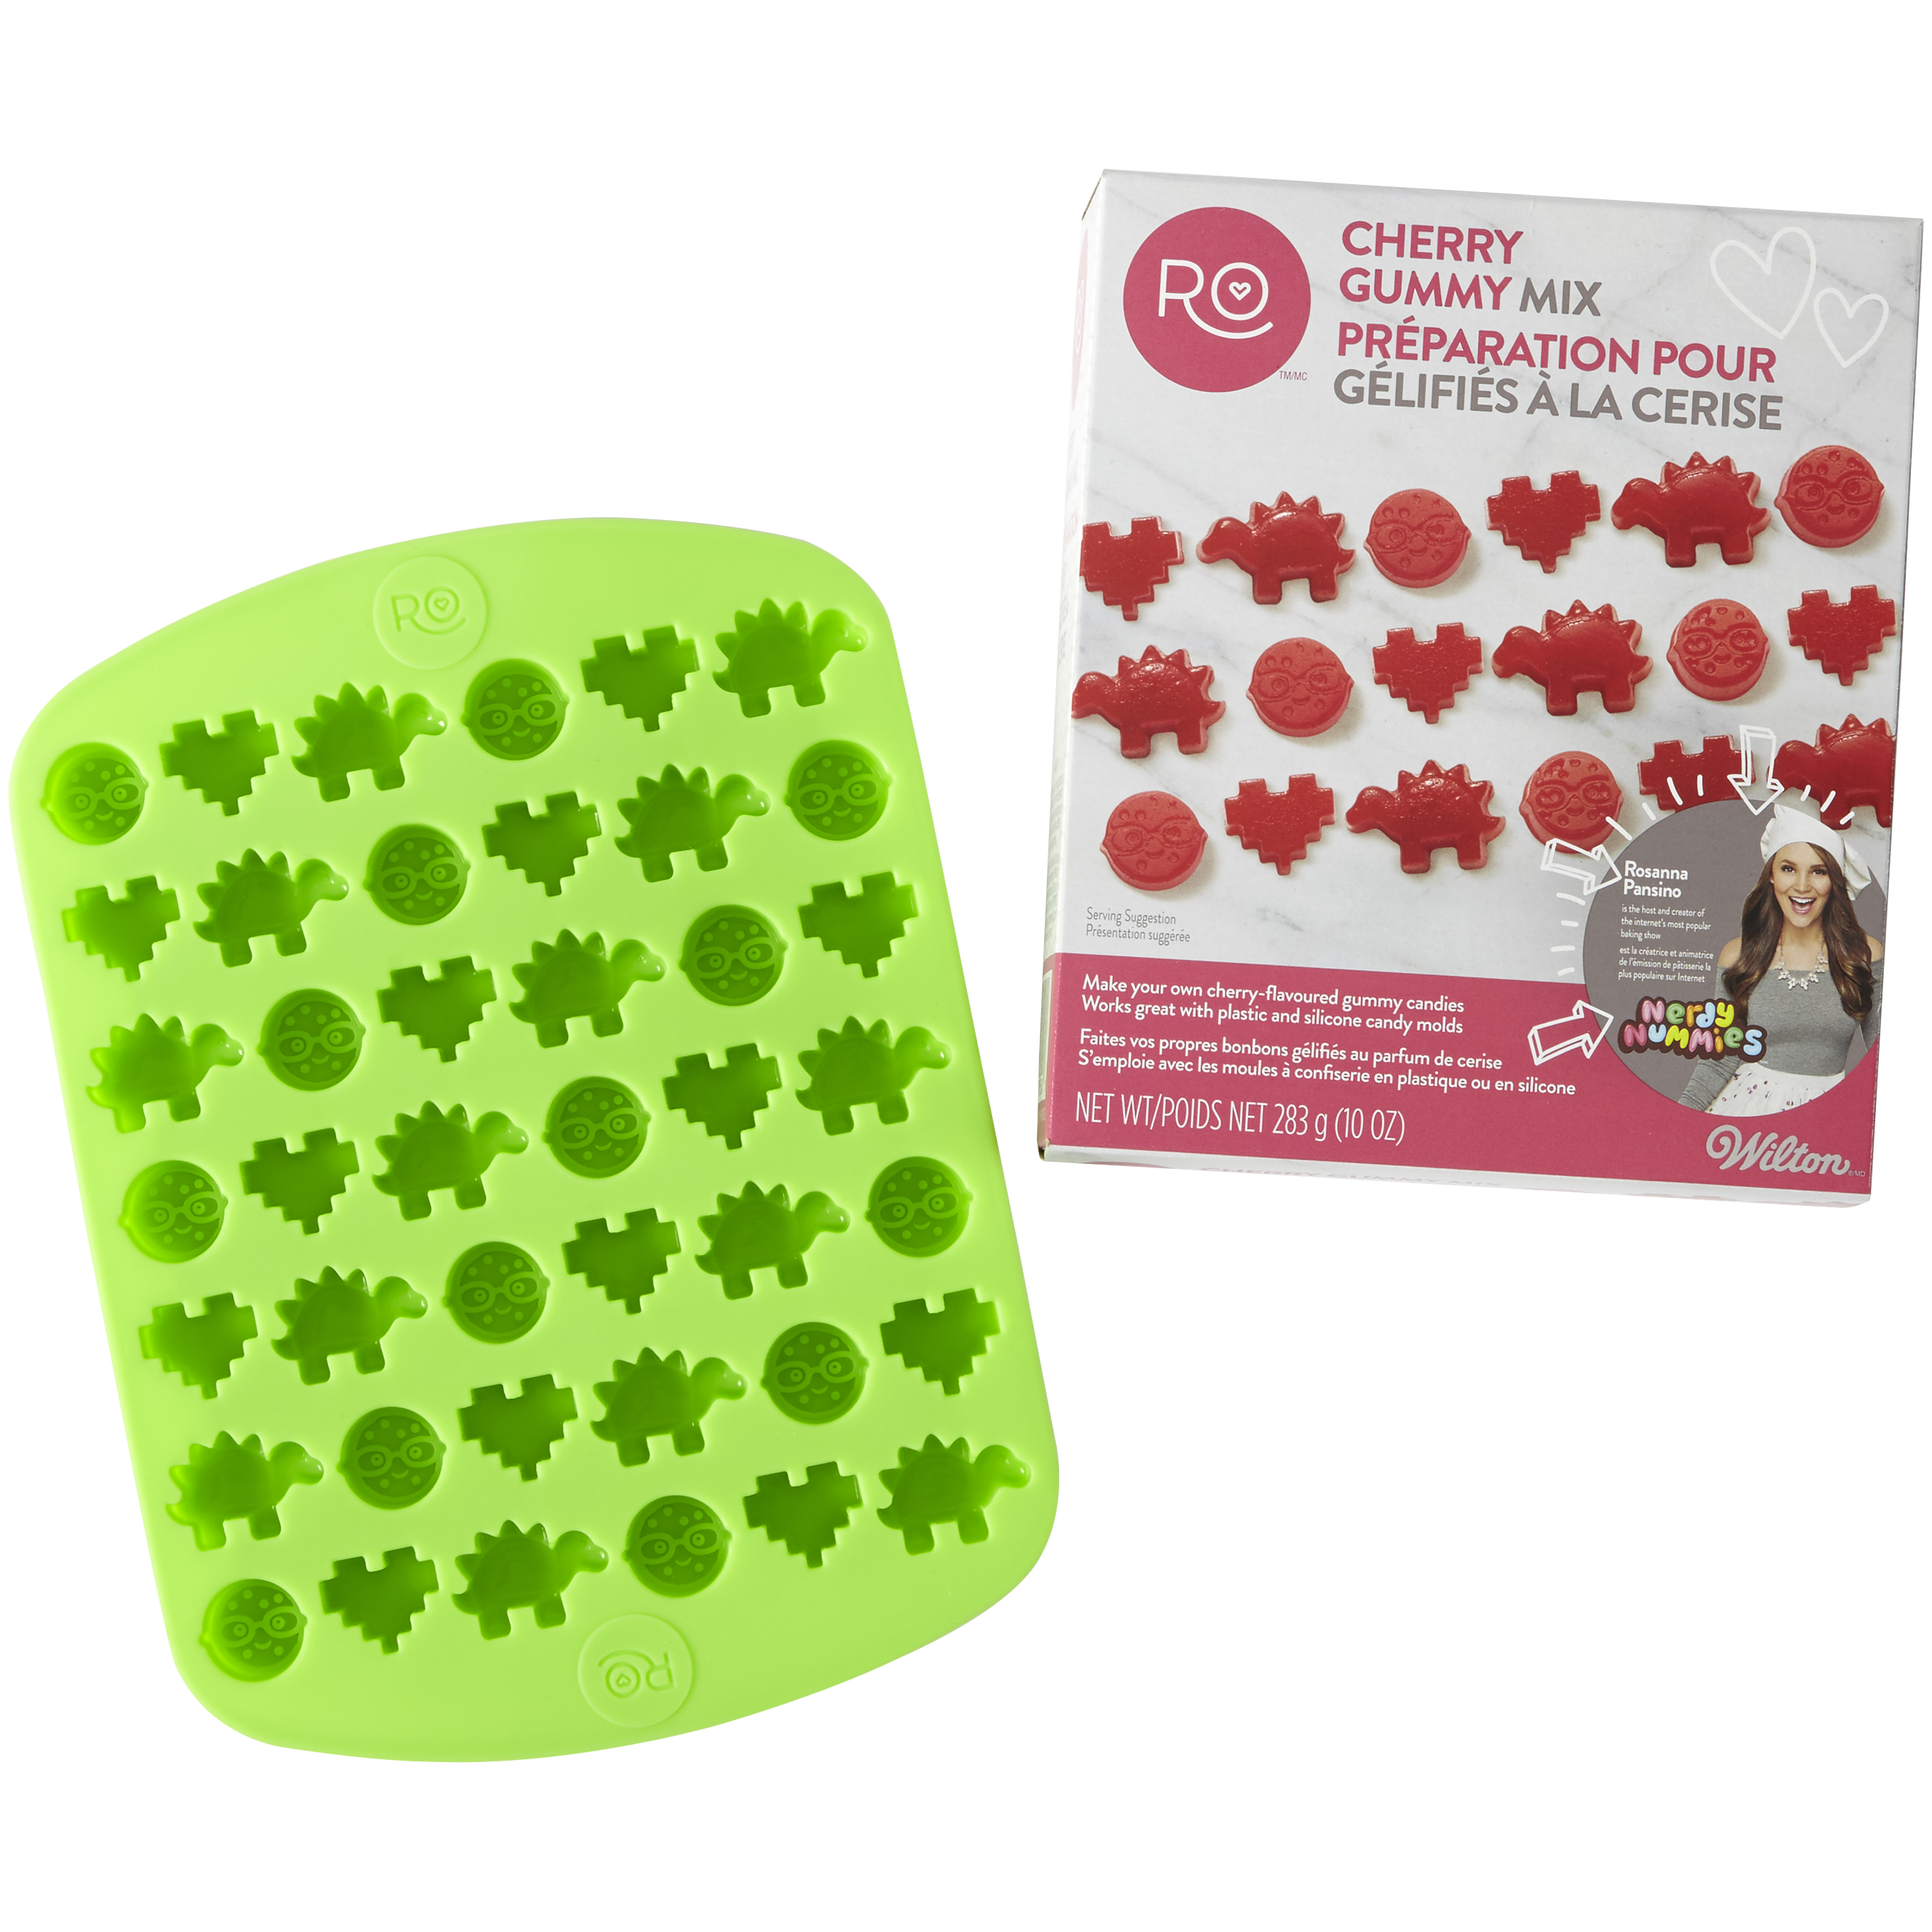 Wilton Rosanna Pansino Nerdy Nummies Cherry Gummy Mix Set